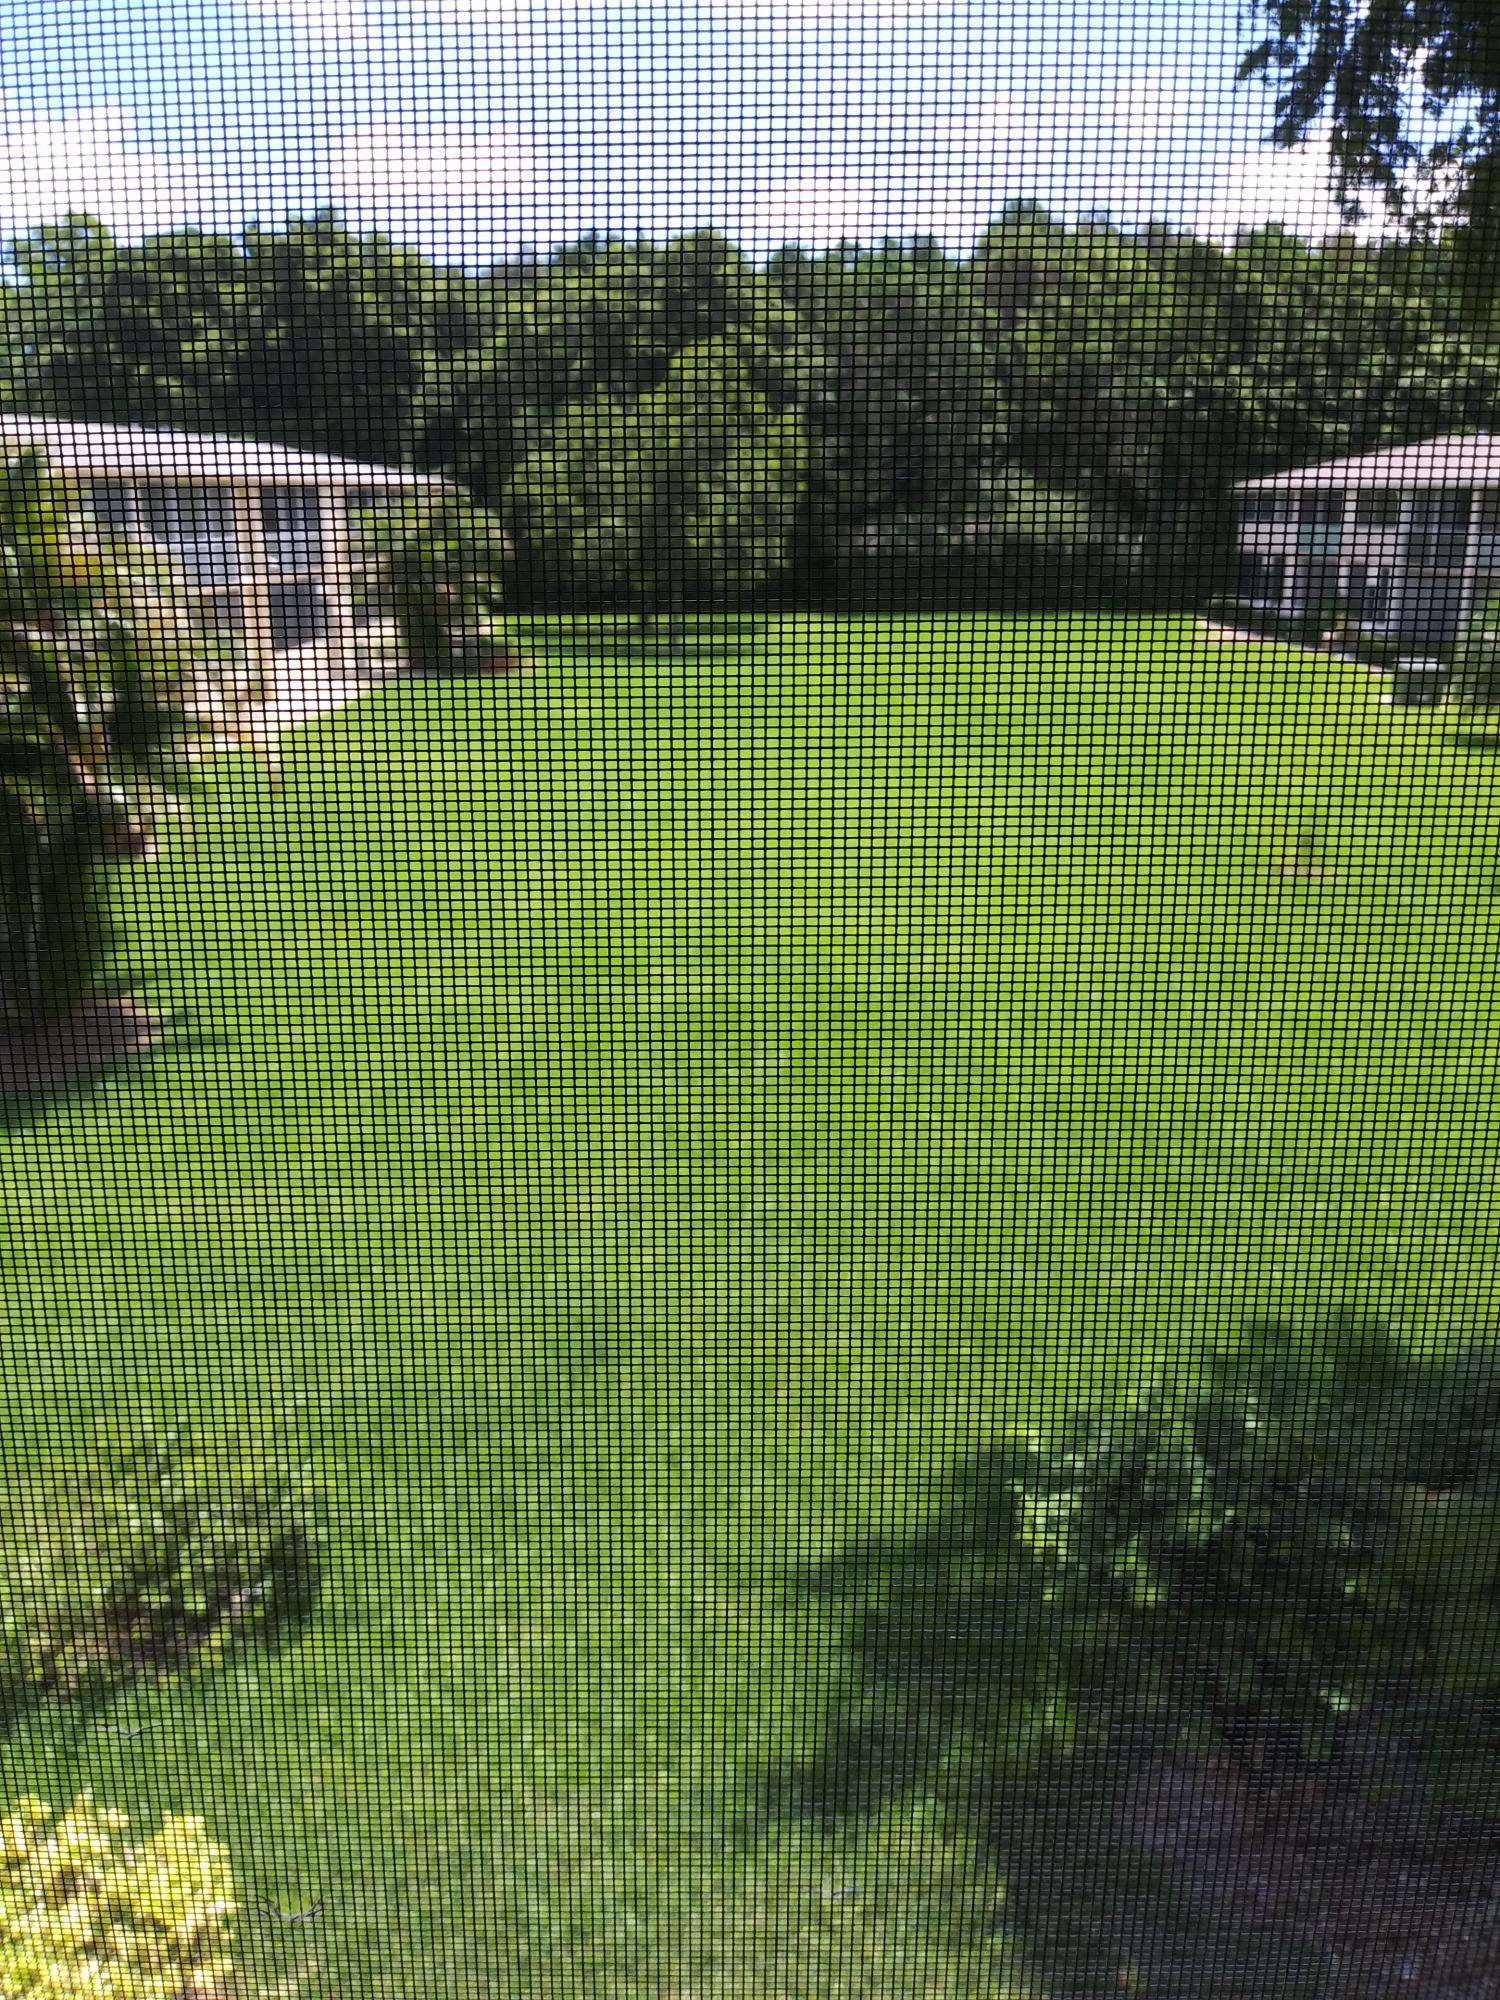 Photo of 132 Hastings H #132, West Palm Beach, FL 33417